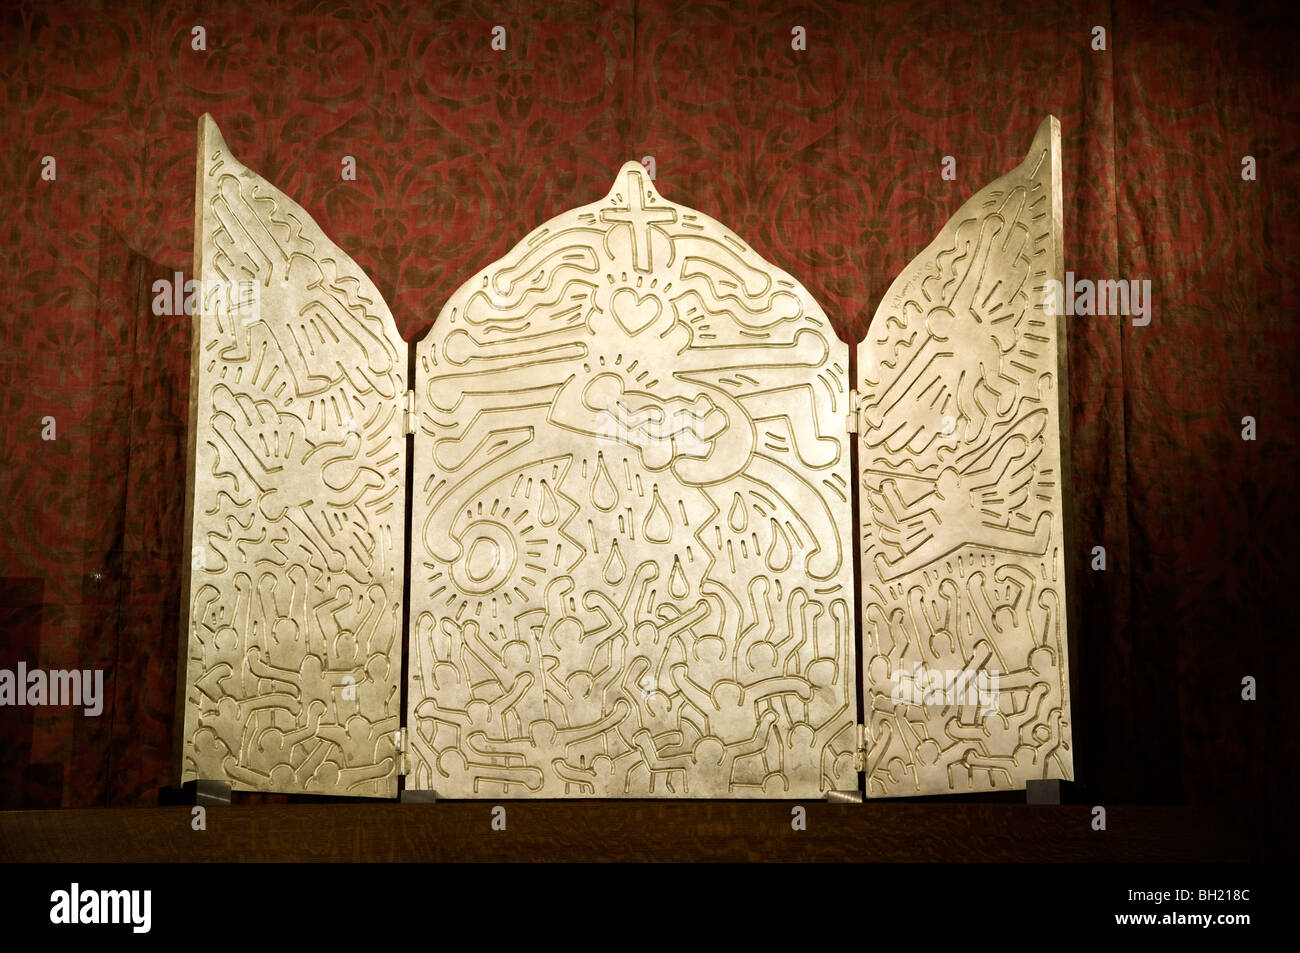 The Life of Christ, bronze and white gold altarpiece by Keith Haring, AIDS Memorial Chapel, Grace Cathedral, San - Stock Image